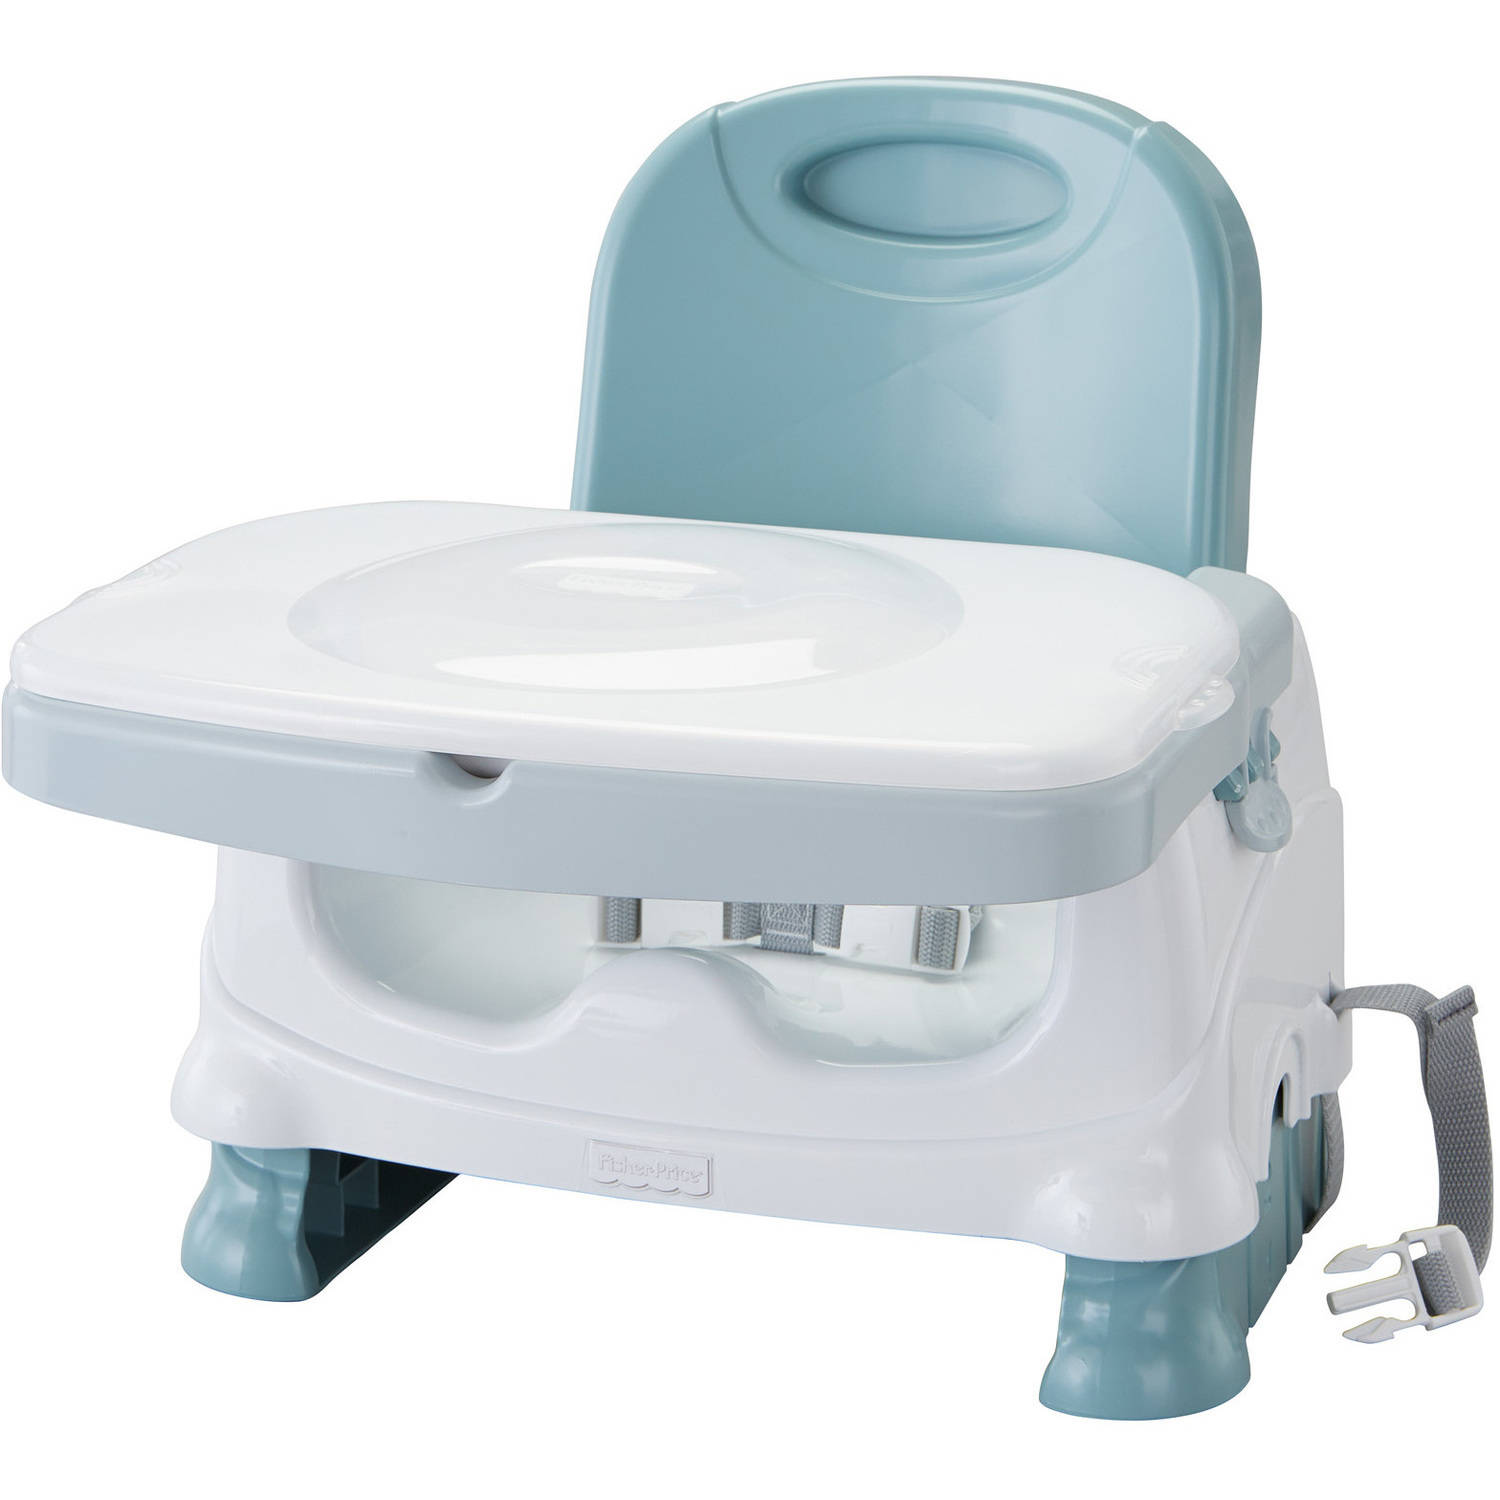 Fisher-Price Healthy Care Deluxe Booster Seat - Walmart.com